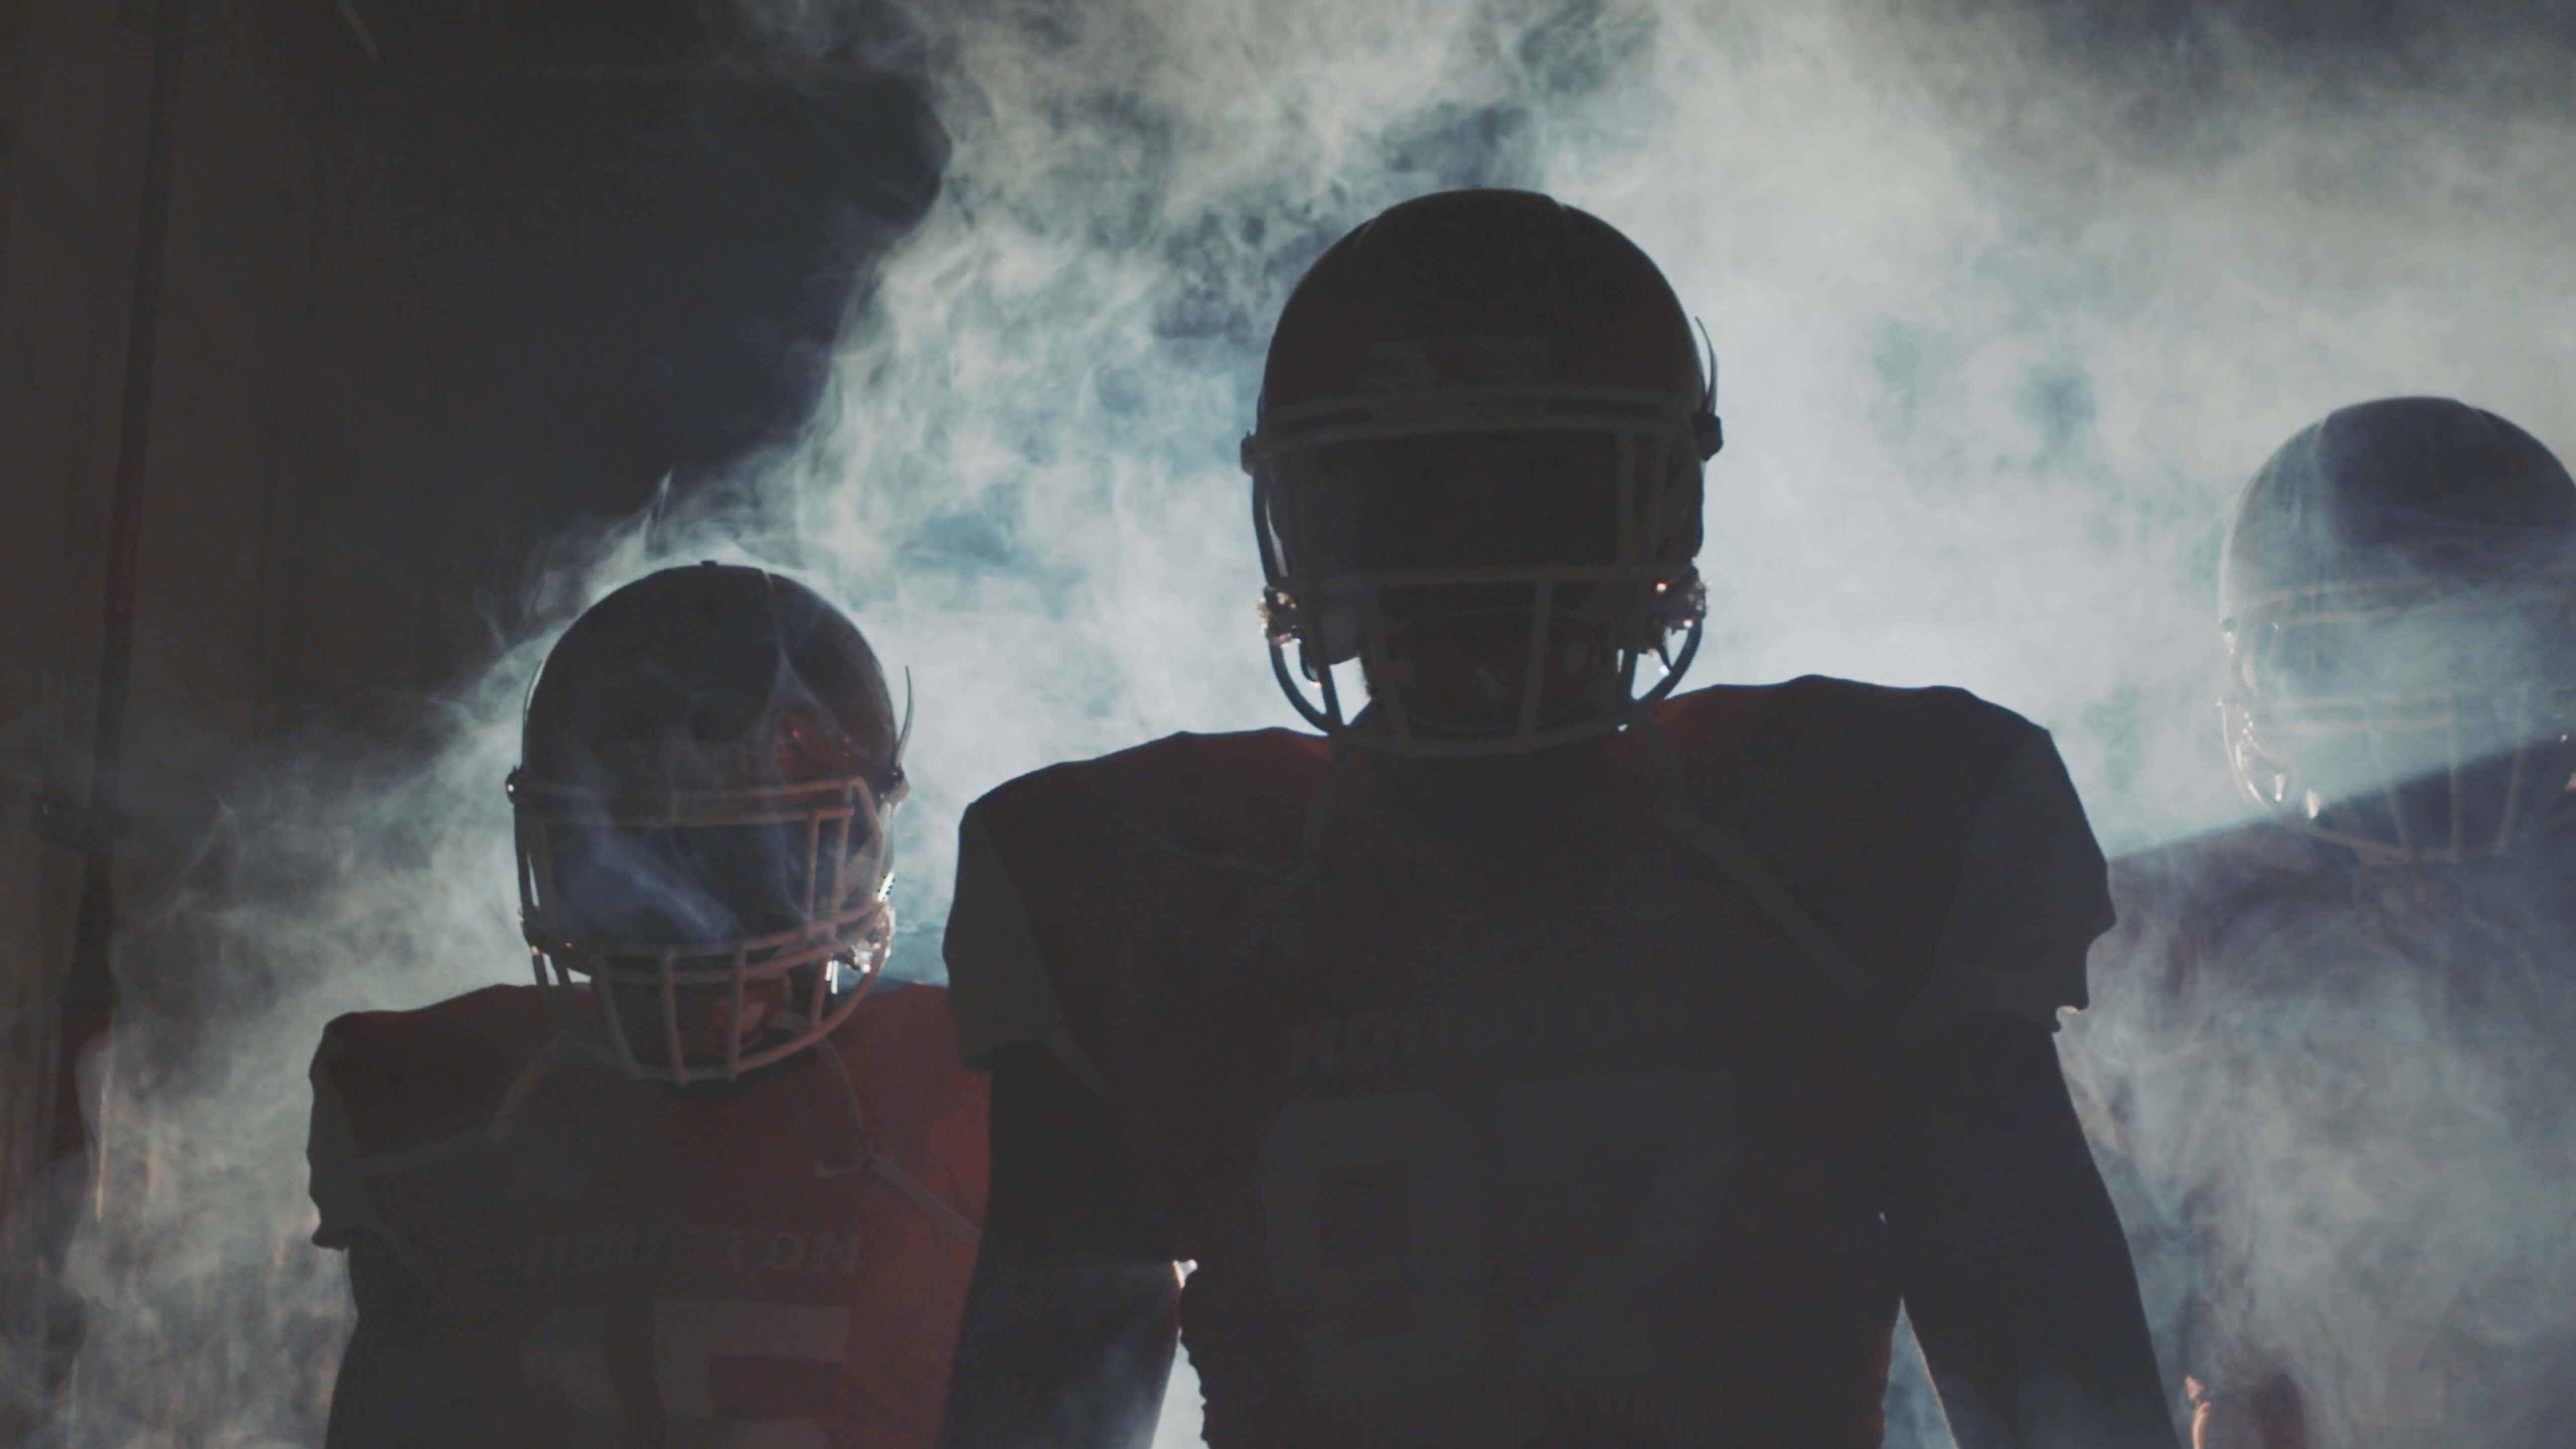 Football Players in Tunnel with Dramatic Lighting and Smoke